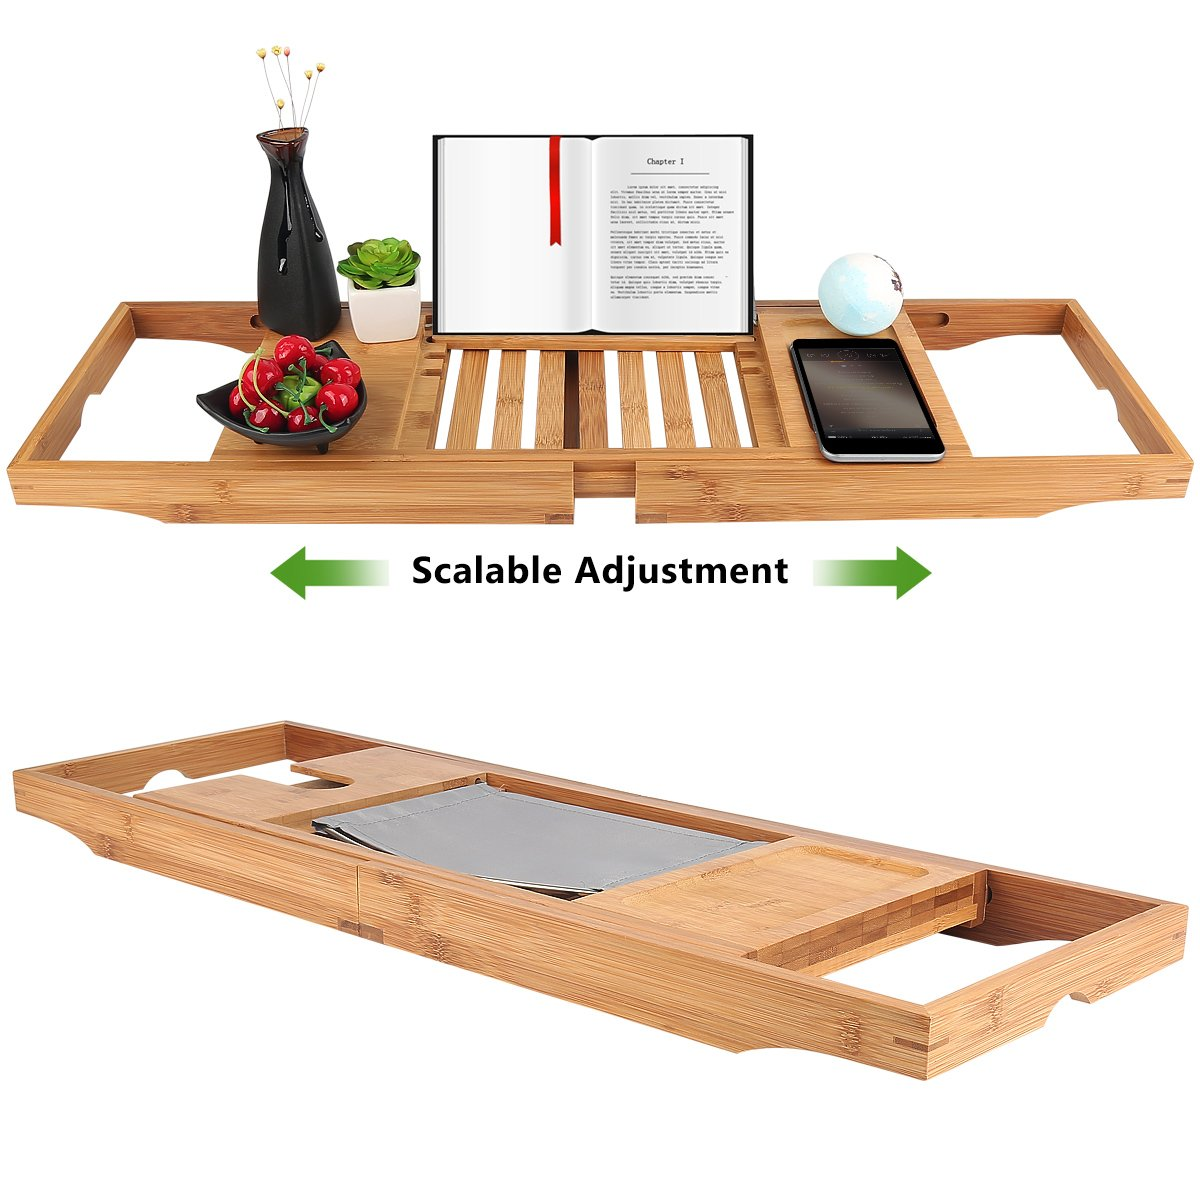 Bathtub Tray oobest Bamboo Bathtub Caddy Tray with Extending Sides Adjustable book holder with Premium Luxury Tray Organizer for Phone and Wineglass (Natural Bamboo Color) by oobest (Image #4)